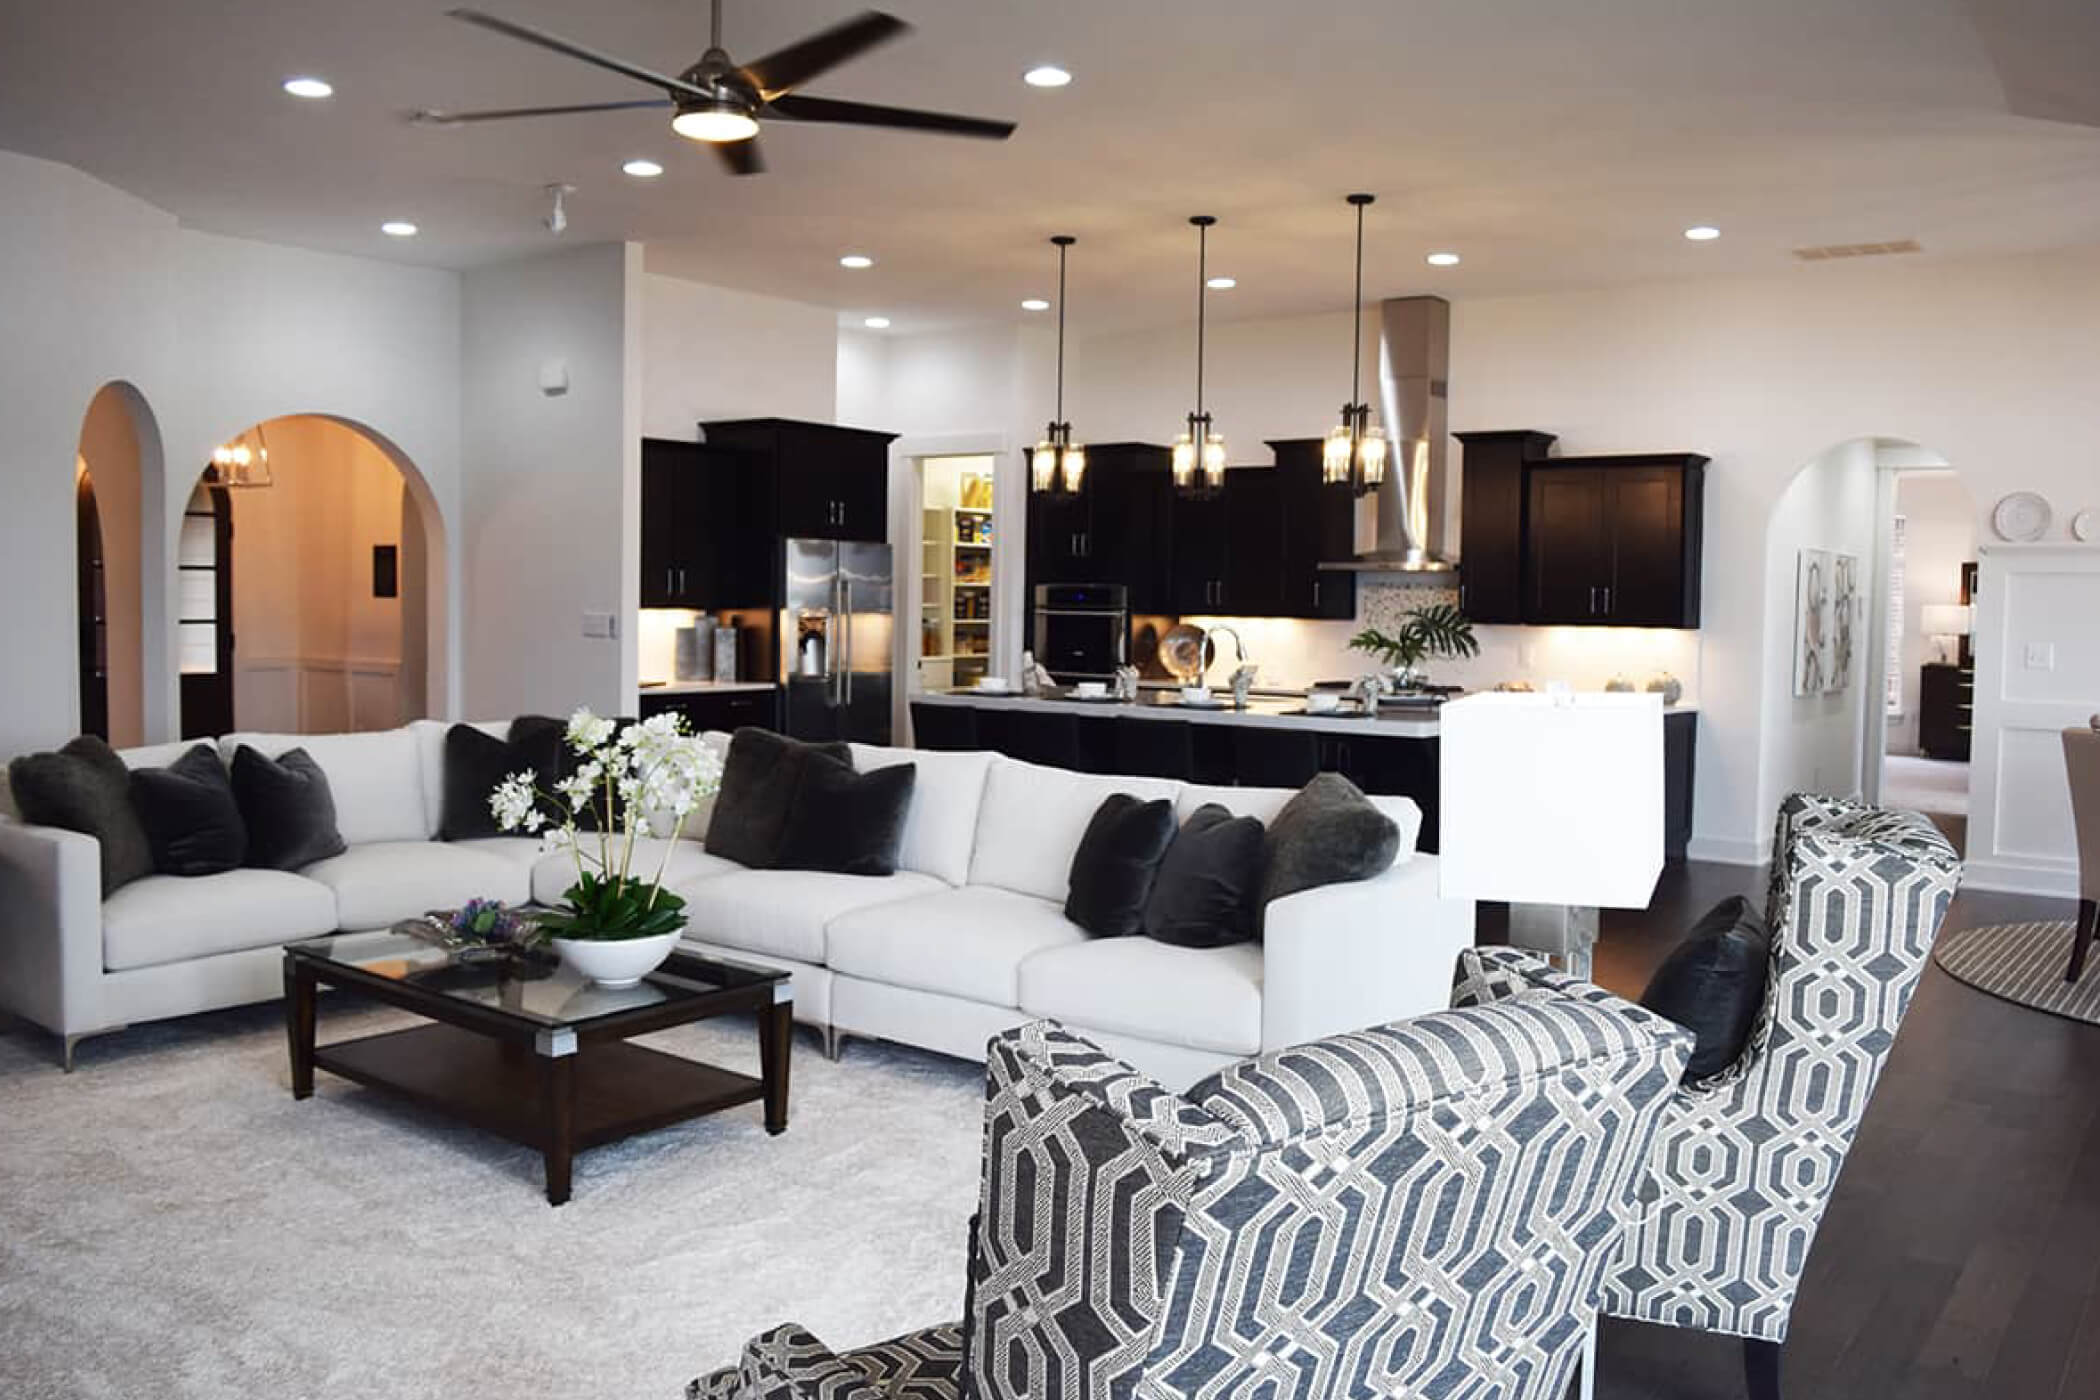 White sectional couch with black pillows sitting in the living room of one of Waterfront of West Clay's Carmel, IN custom homes